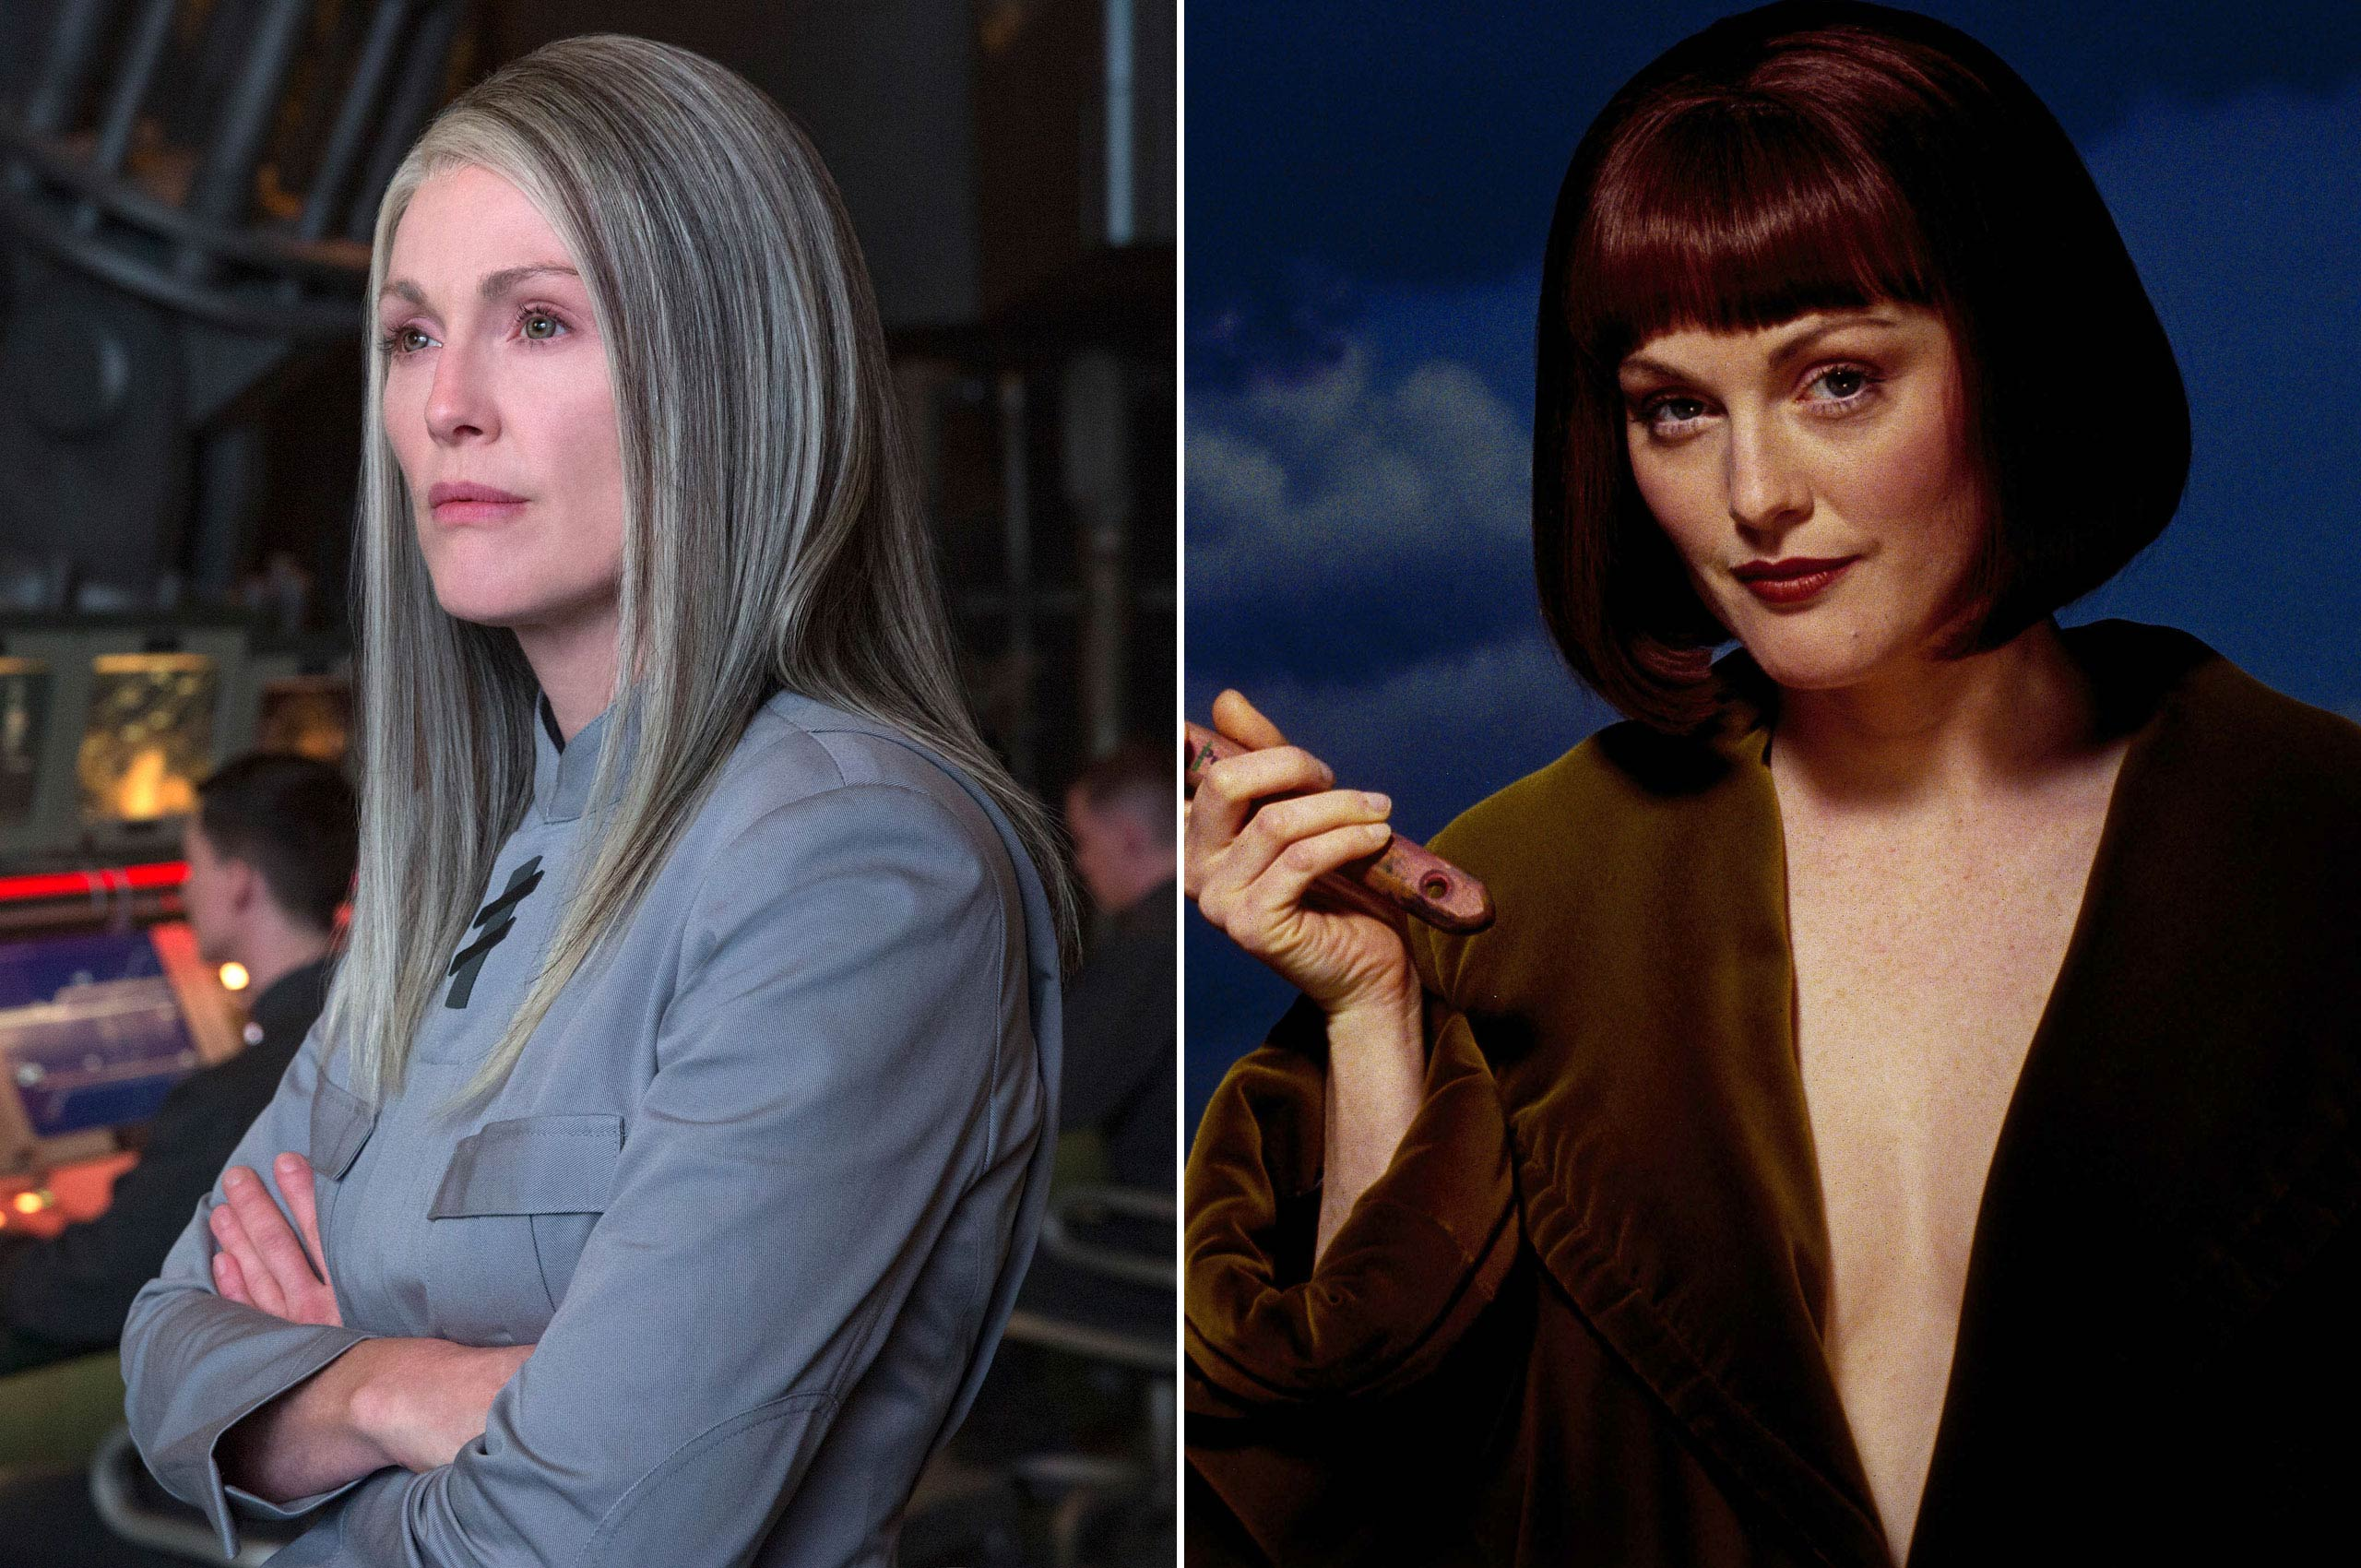 Julianne Moore takes on a stark tone as the reserved and stoic President Alma Coin of District 13 in <i>Mockingjay</i>, but in 1998 she played the uninhibited avant-garde artist Maude in <i>The Big Lebowski</i>.